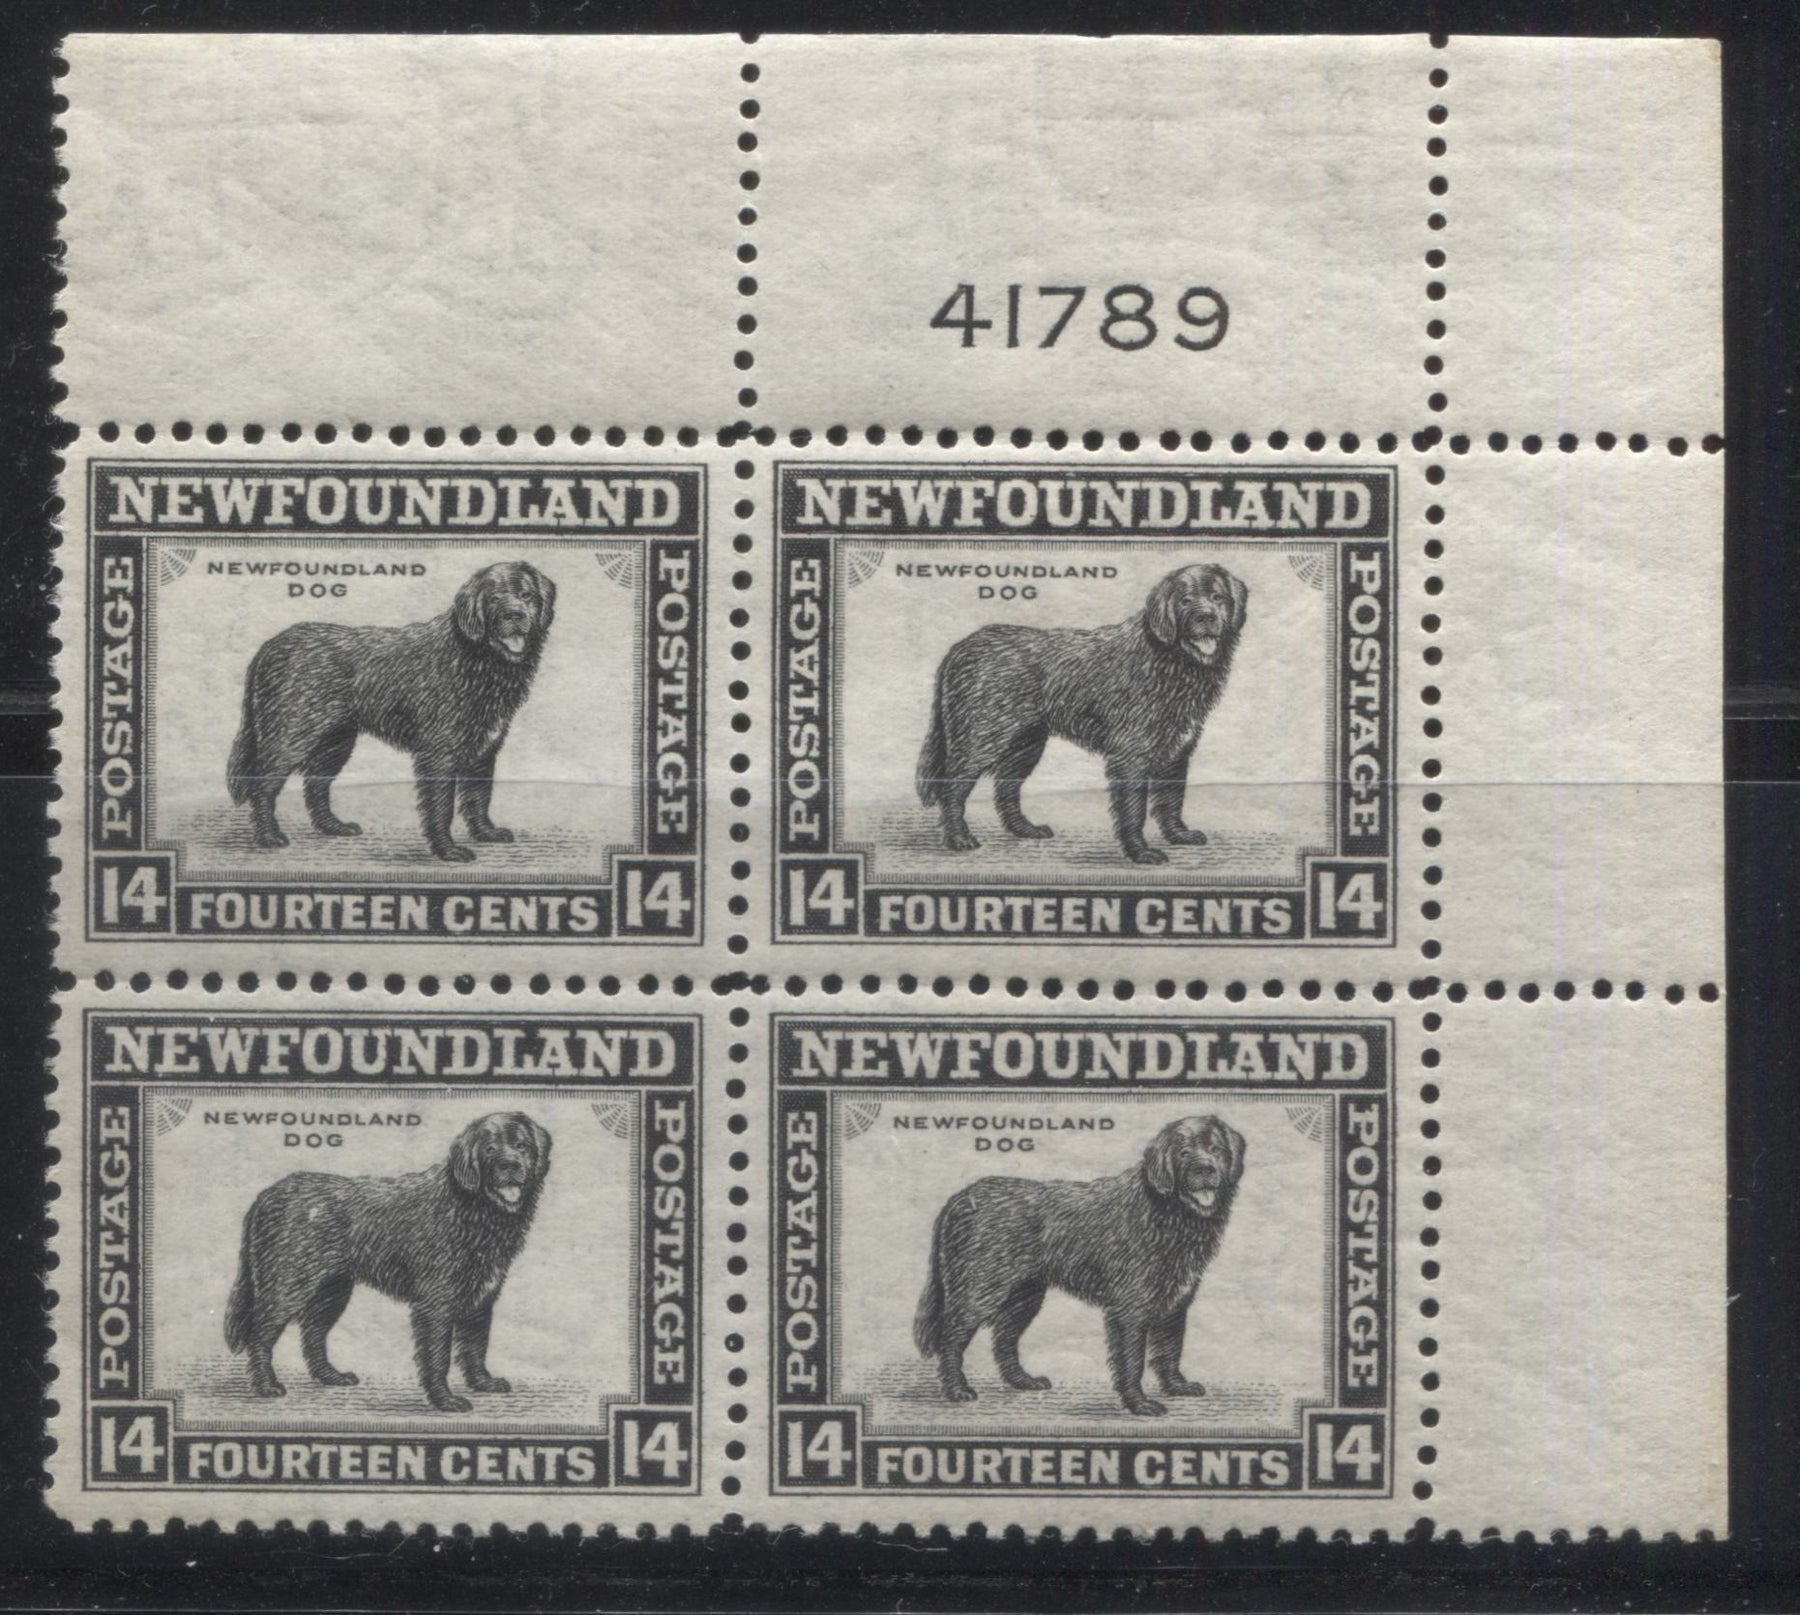 Newfoundland #261 14c Black Newfoundland Dog, 1941-1949 Second Resources Issue, A Very Fine NH Upper Right Plate 41789 Block Brixton Chrome